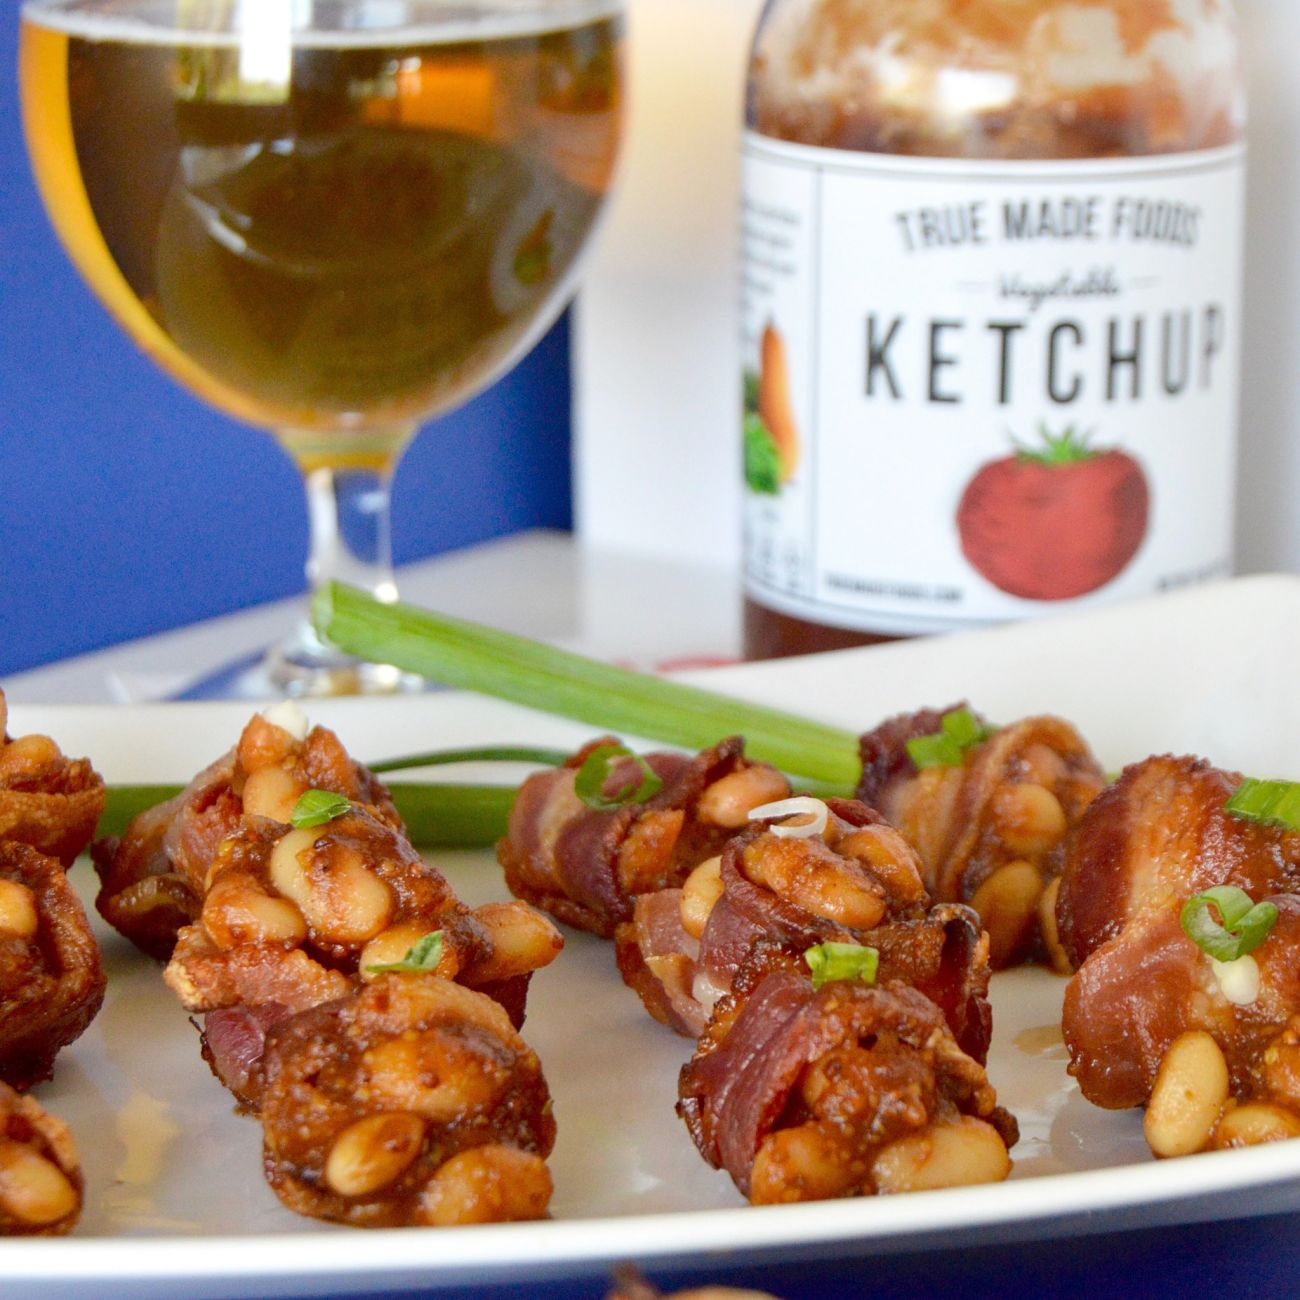 Baked Bean Bacon Cups are ideal for a big BBQ! Bite sized baked beans packed full of flavor served in individual servings of bacon cups! For those times you want to try everything, but don't want to be so full afterwards you can't move!